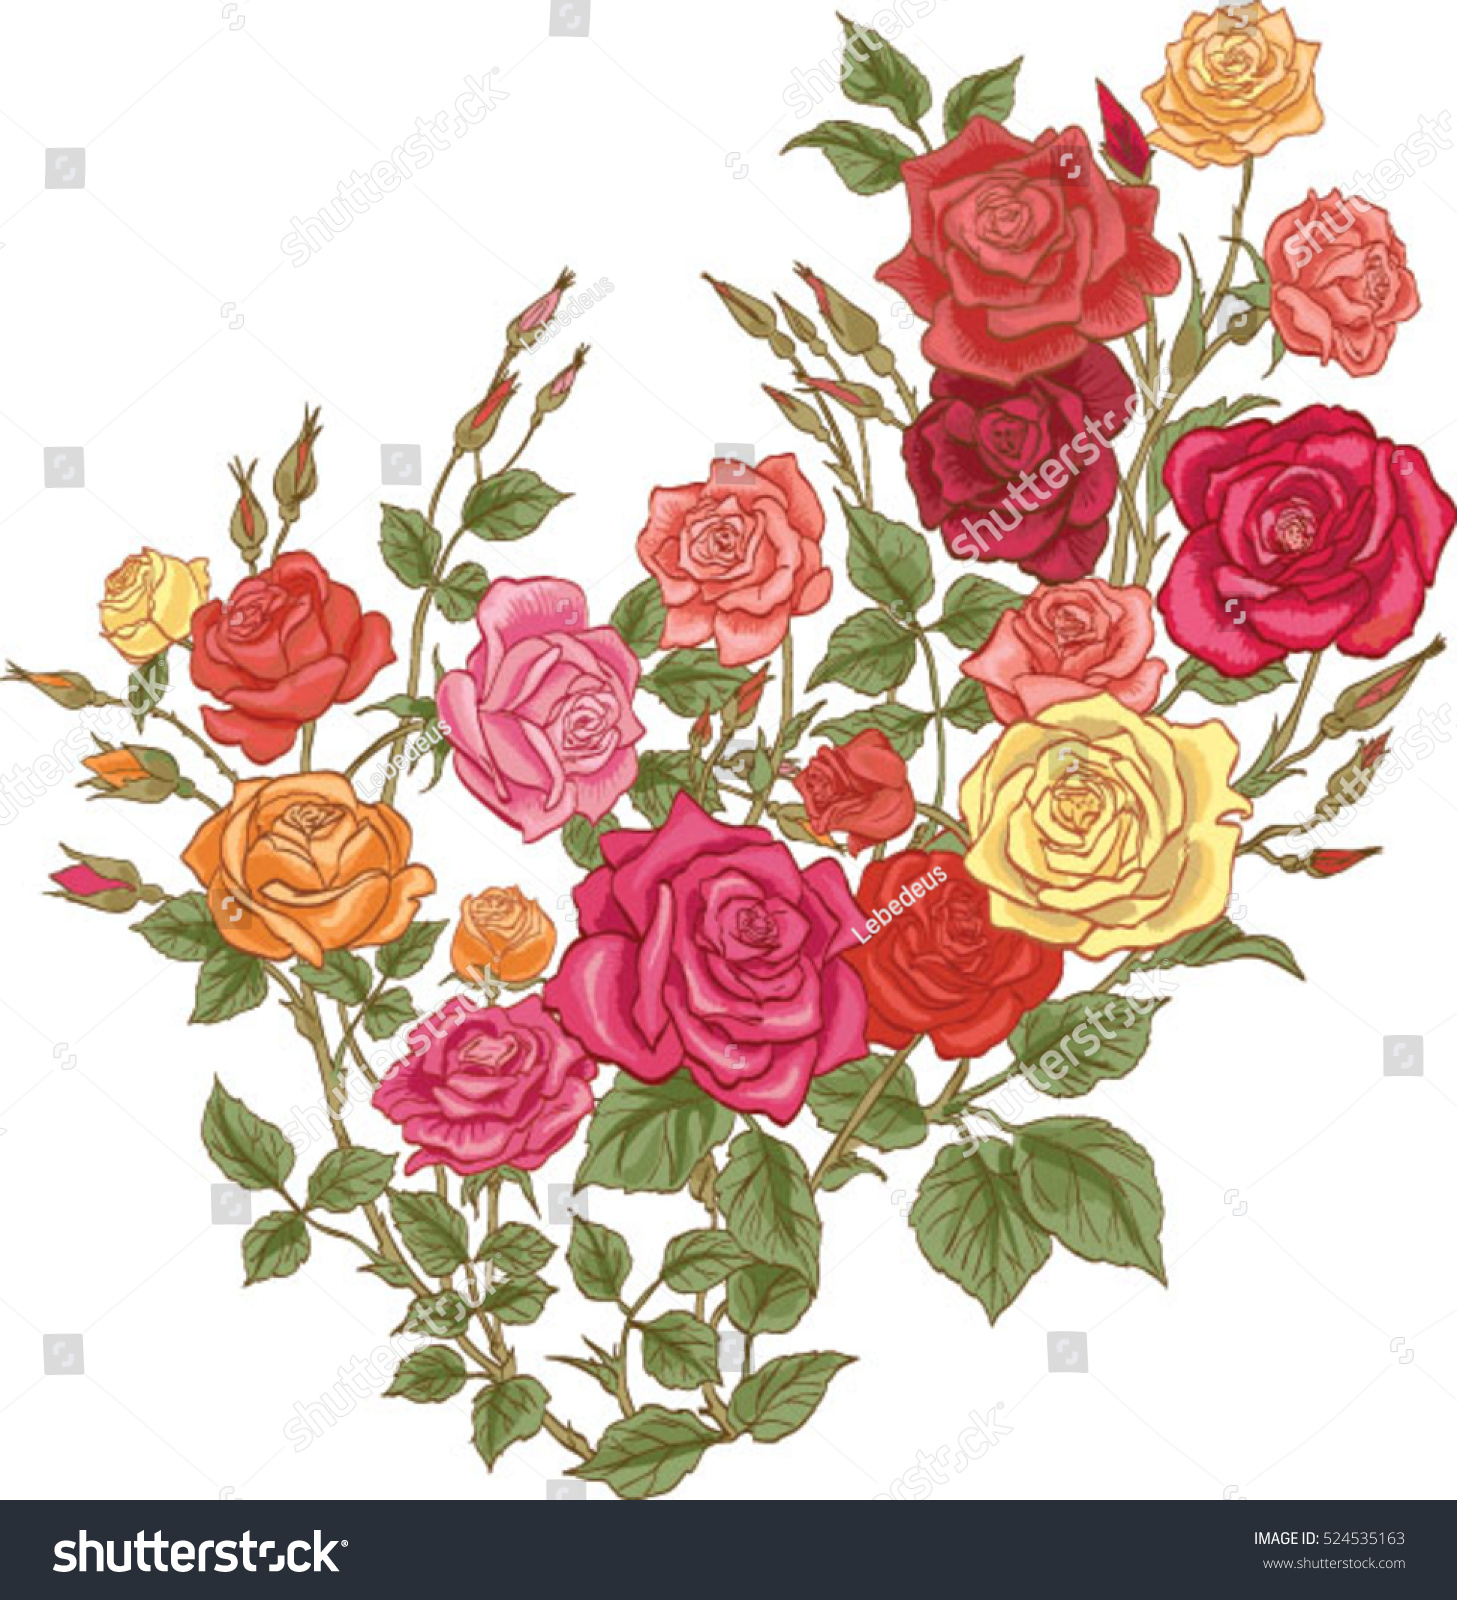 Colorful Flowers Vector Roses Stock Vector 524535163 - Shutterstock